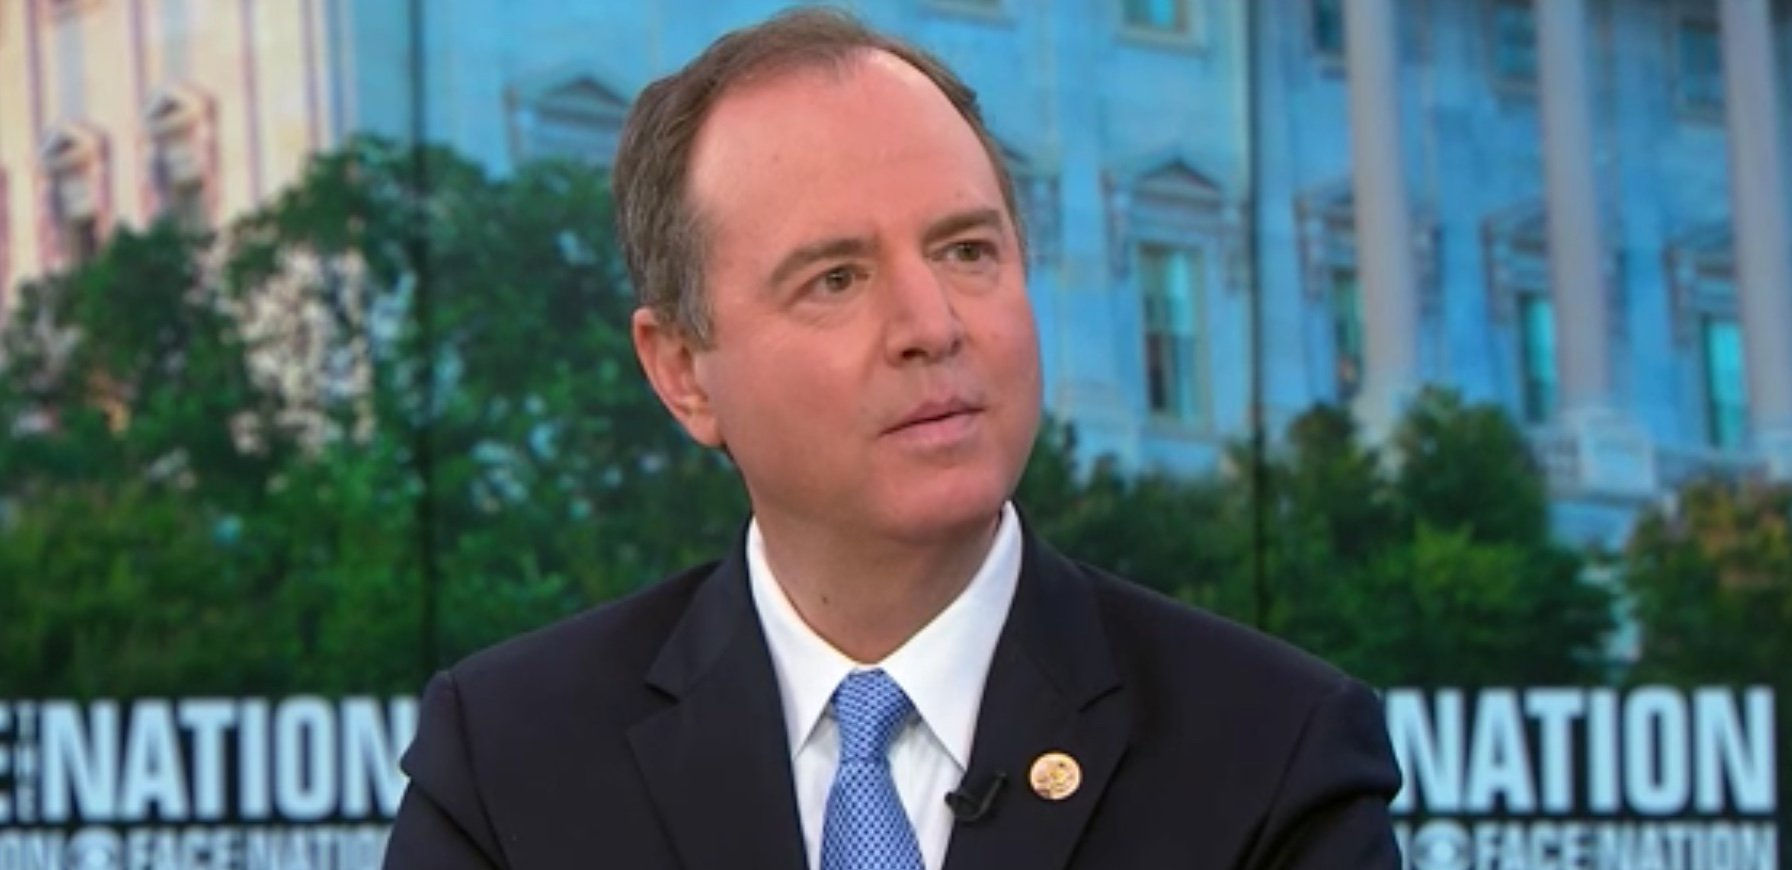 Democratic Rep. Adam Schiff appears on Face the Nation, Dec. 9, 2018. CBS Screenshot.